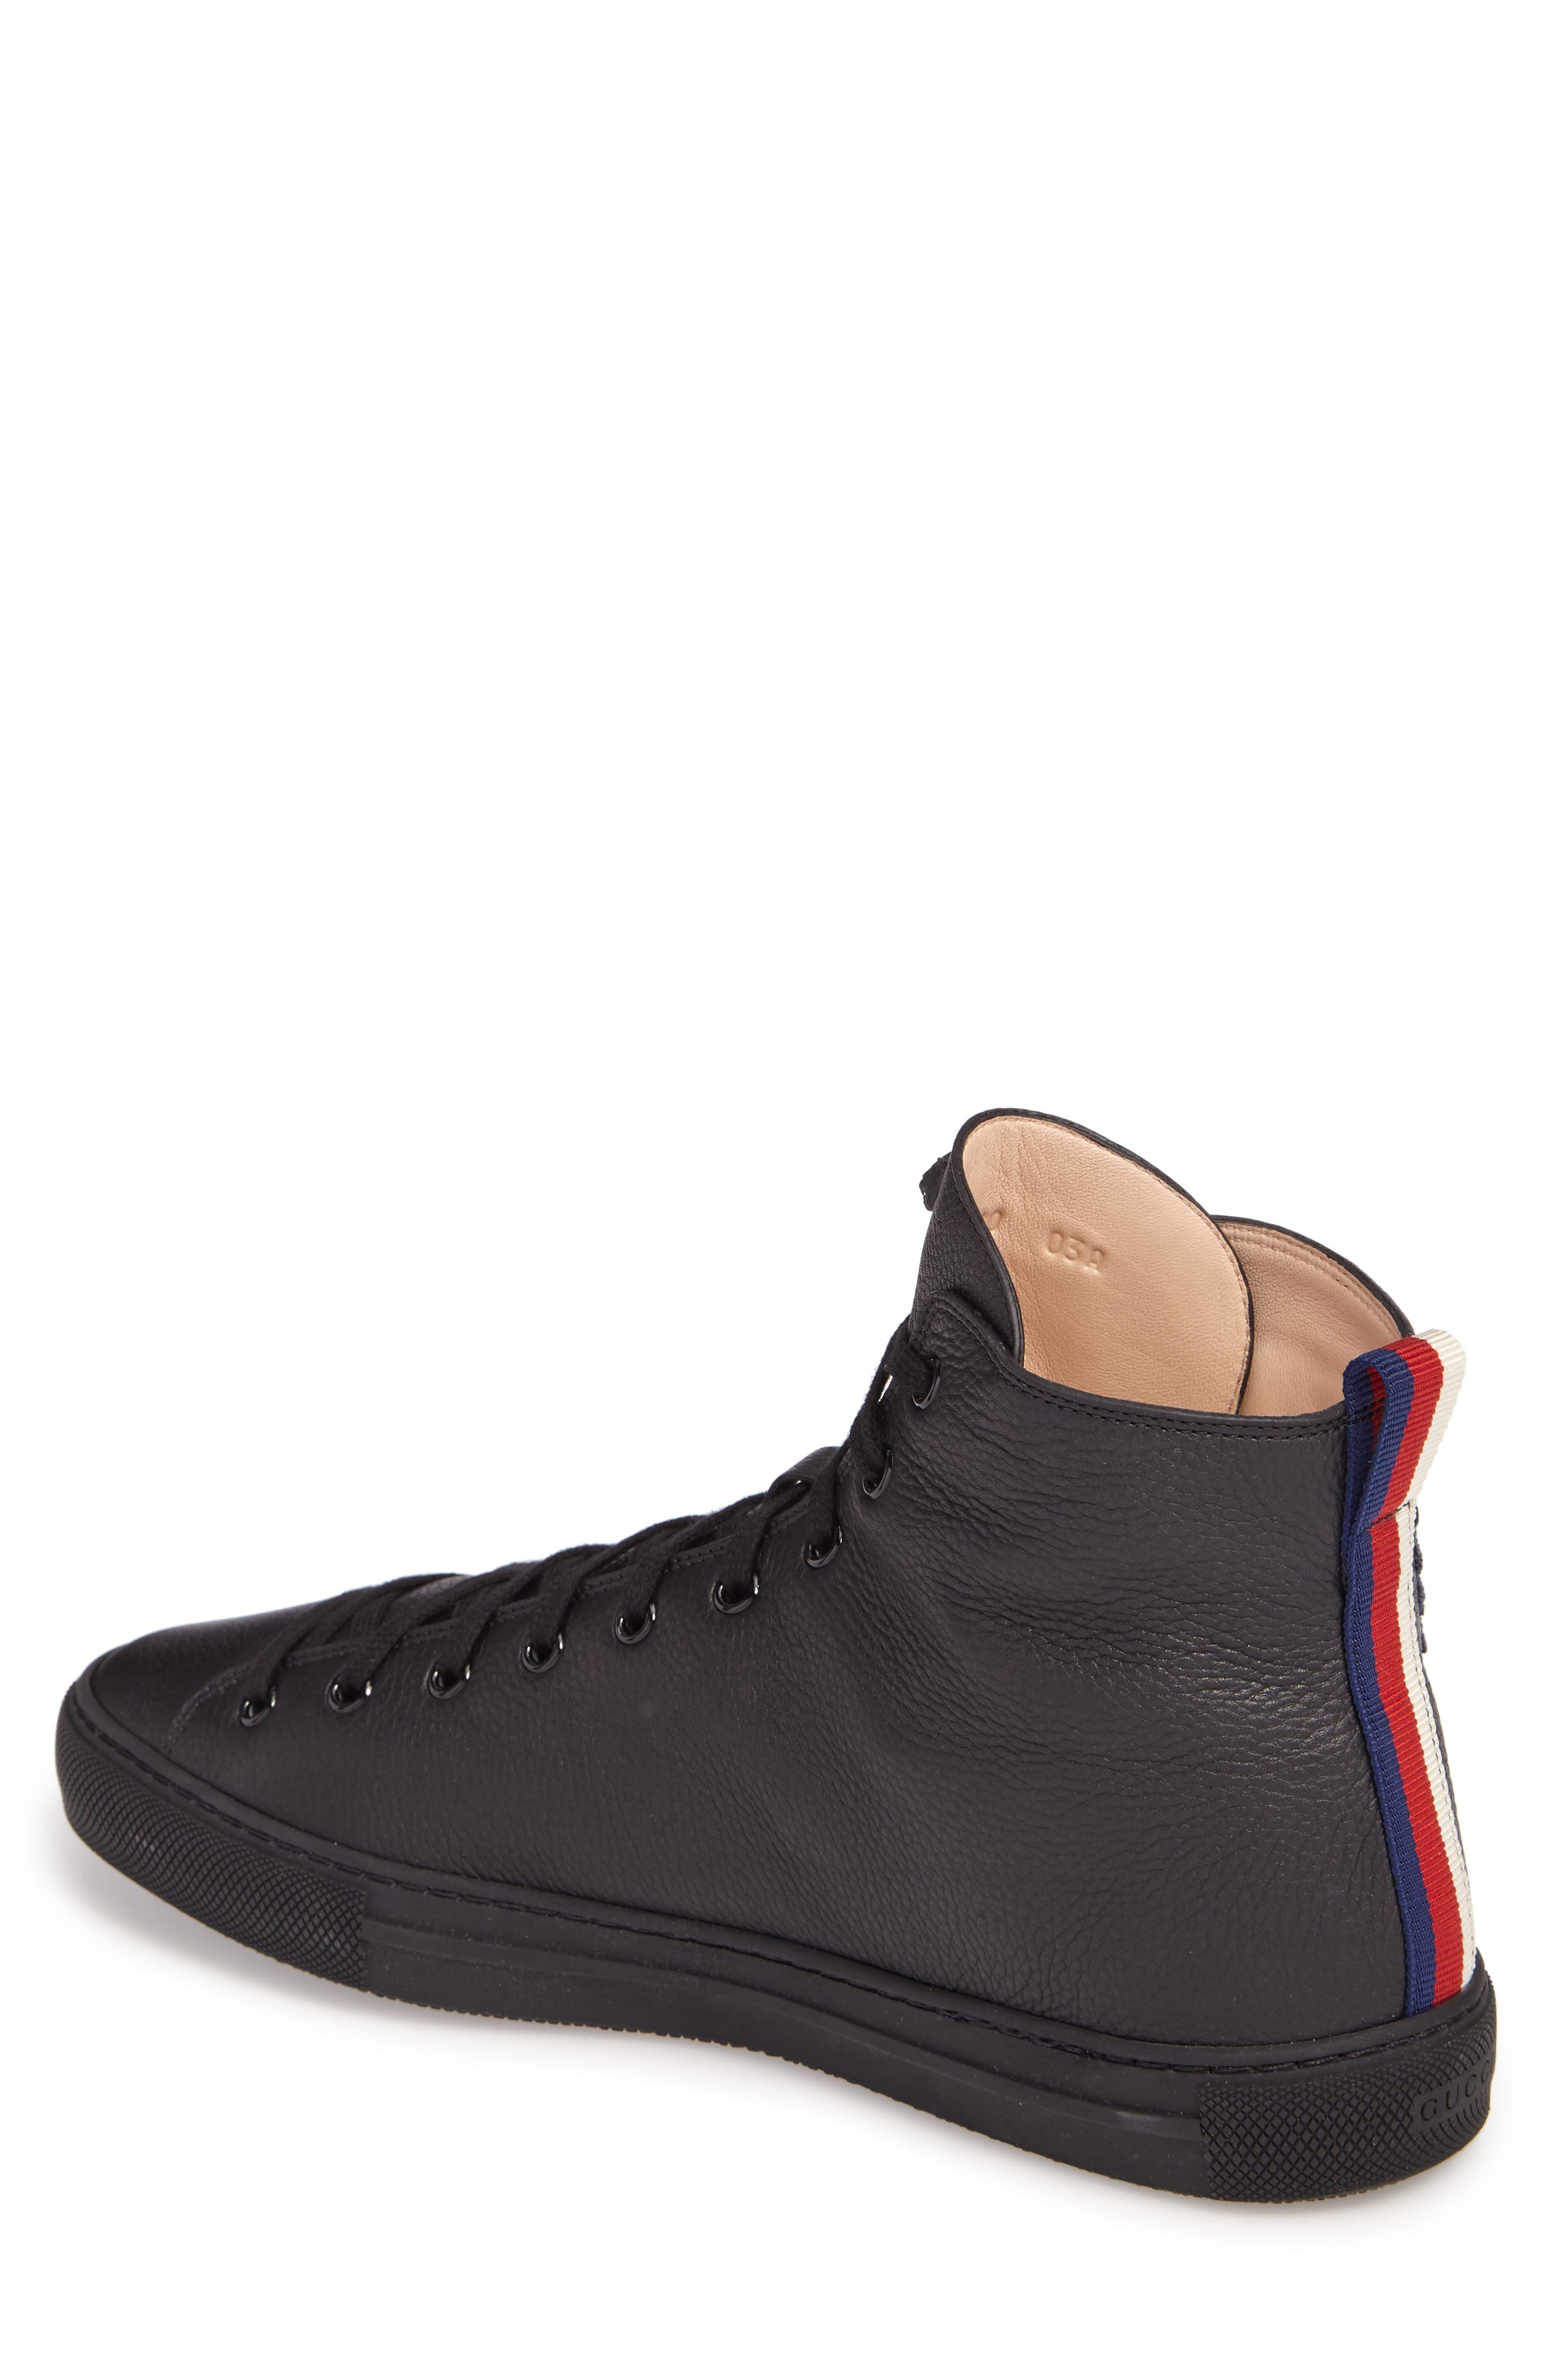 Major Angry Wolf Sneaker,                             Alternate thumbnail 2, color,                             005